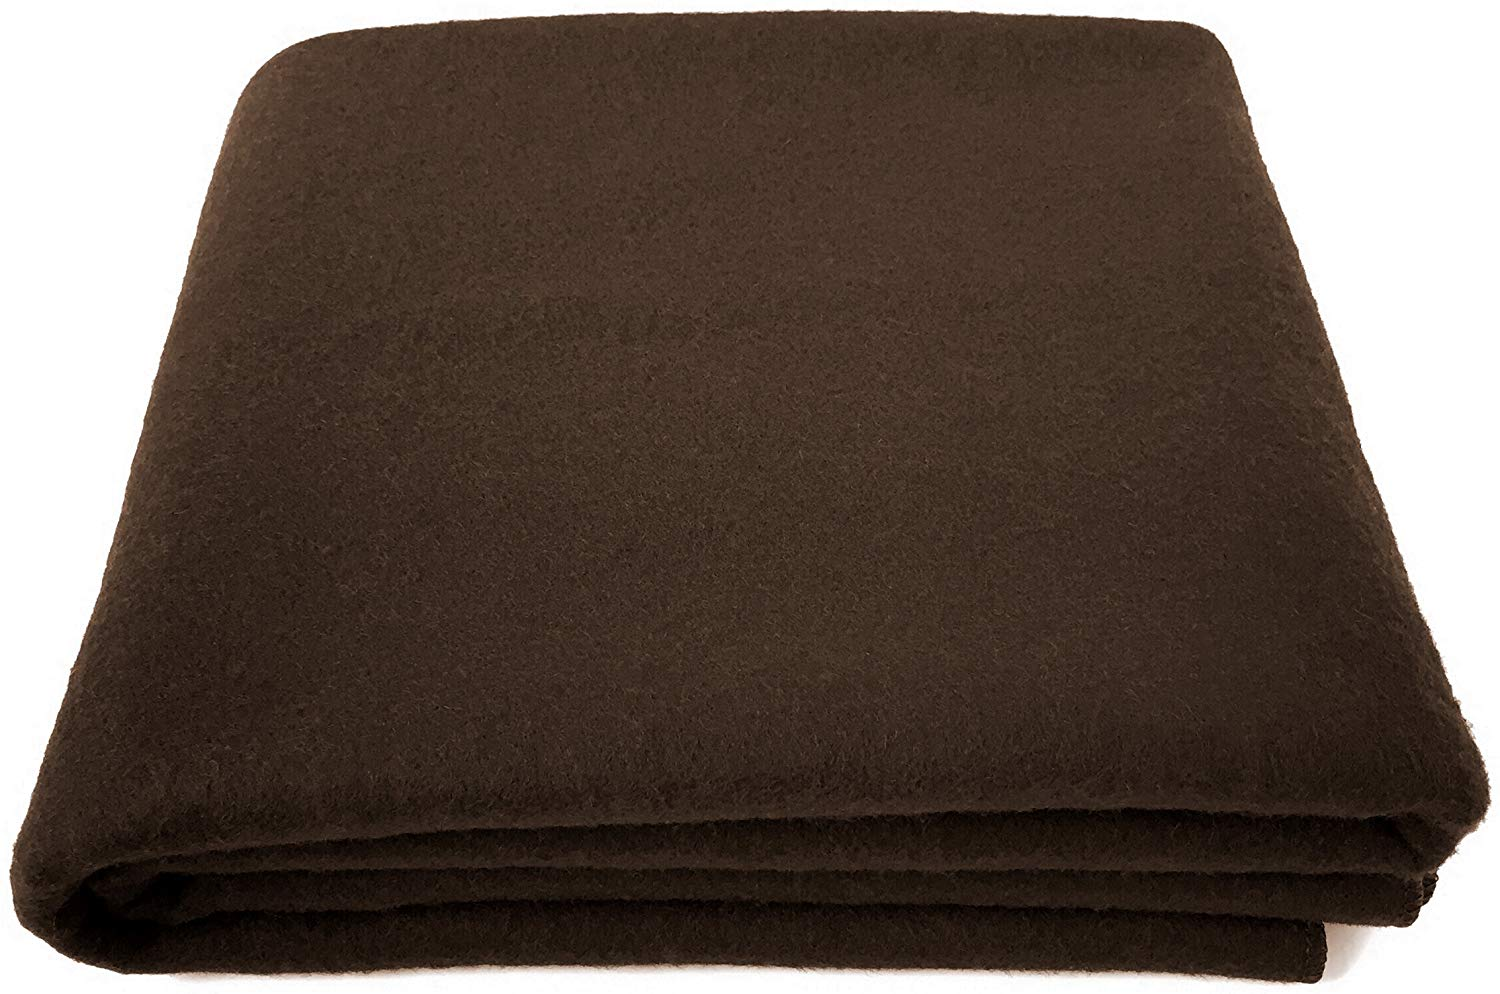 """EKTOS 80% Wool Blanket, Brown, Light & Warm 3.7 lbs, Large Washable 66""""x90"""" Size, Perfect for Outdoor Camping, Survival & Emergency Preparedness Use"""